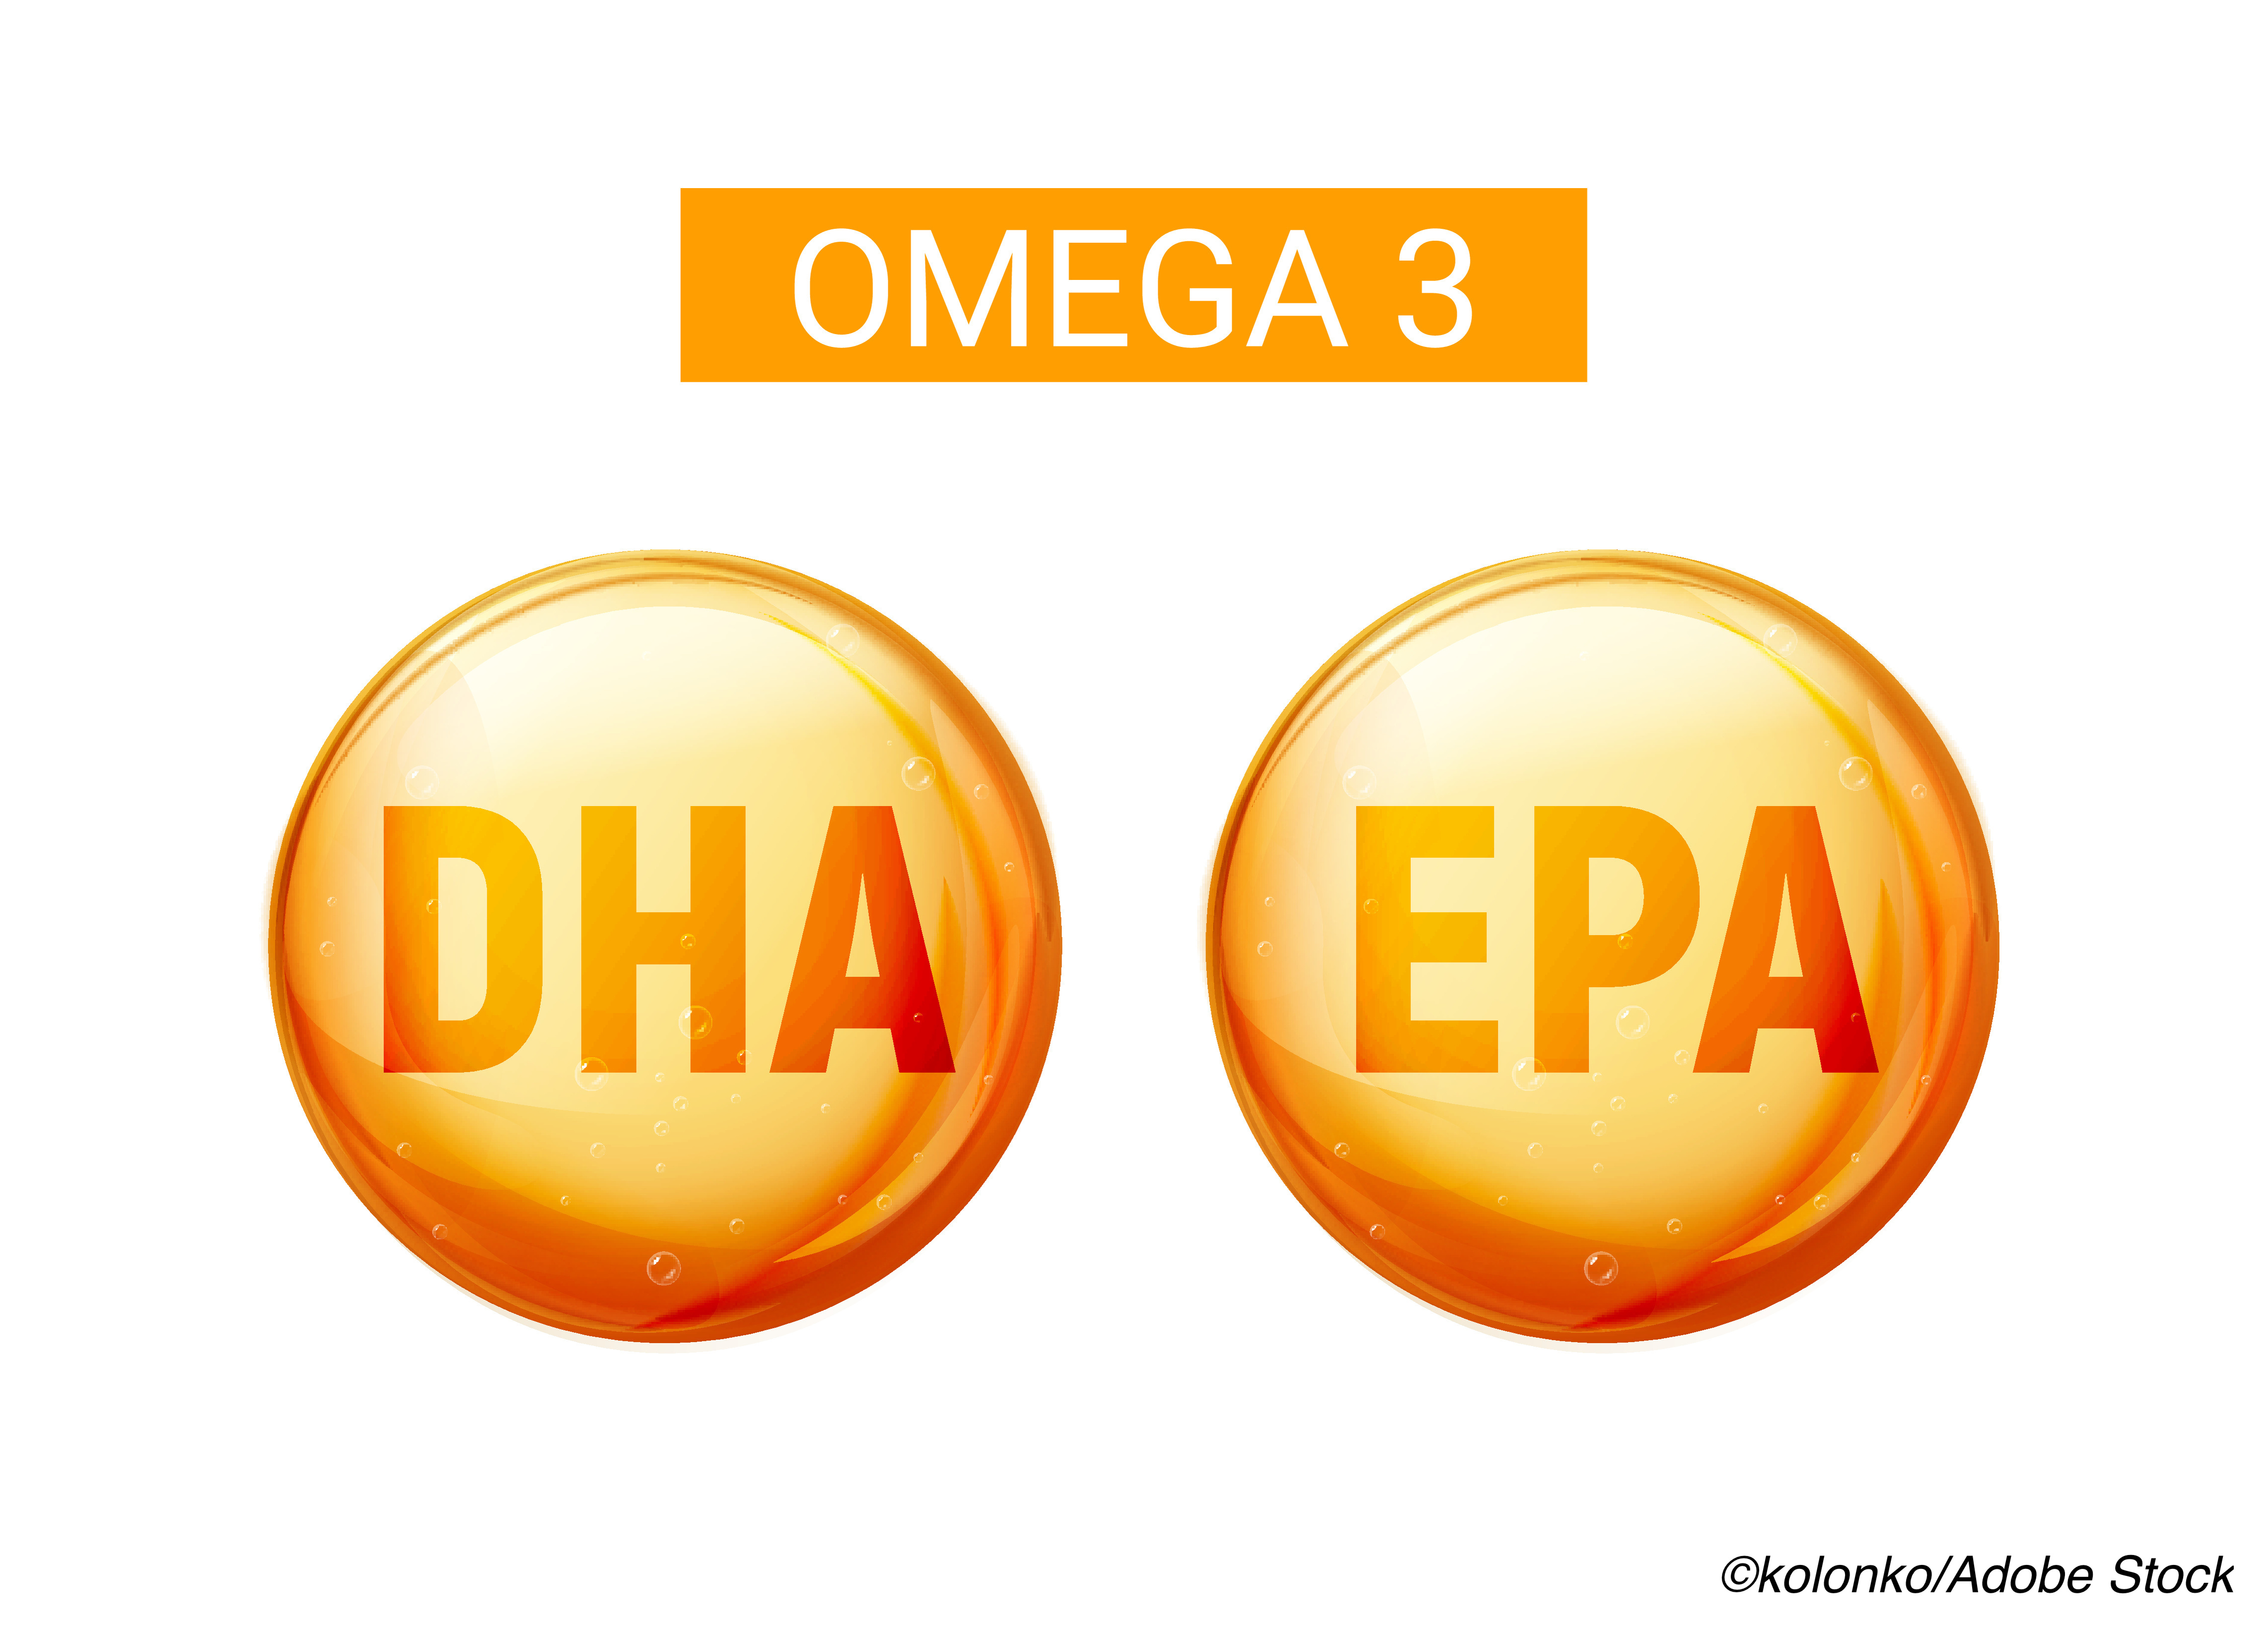 AHA: No Benefit for Omega-3 in STRENGTH Trial